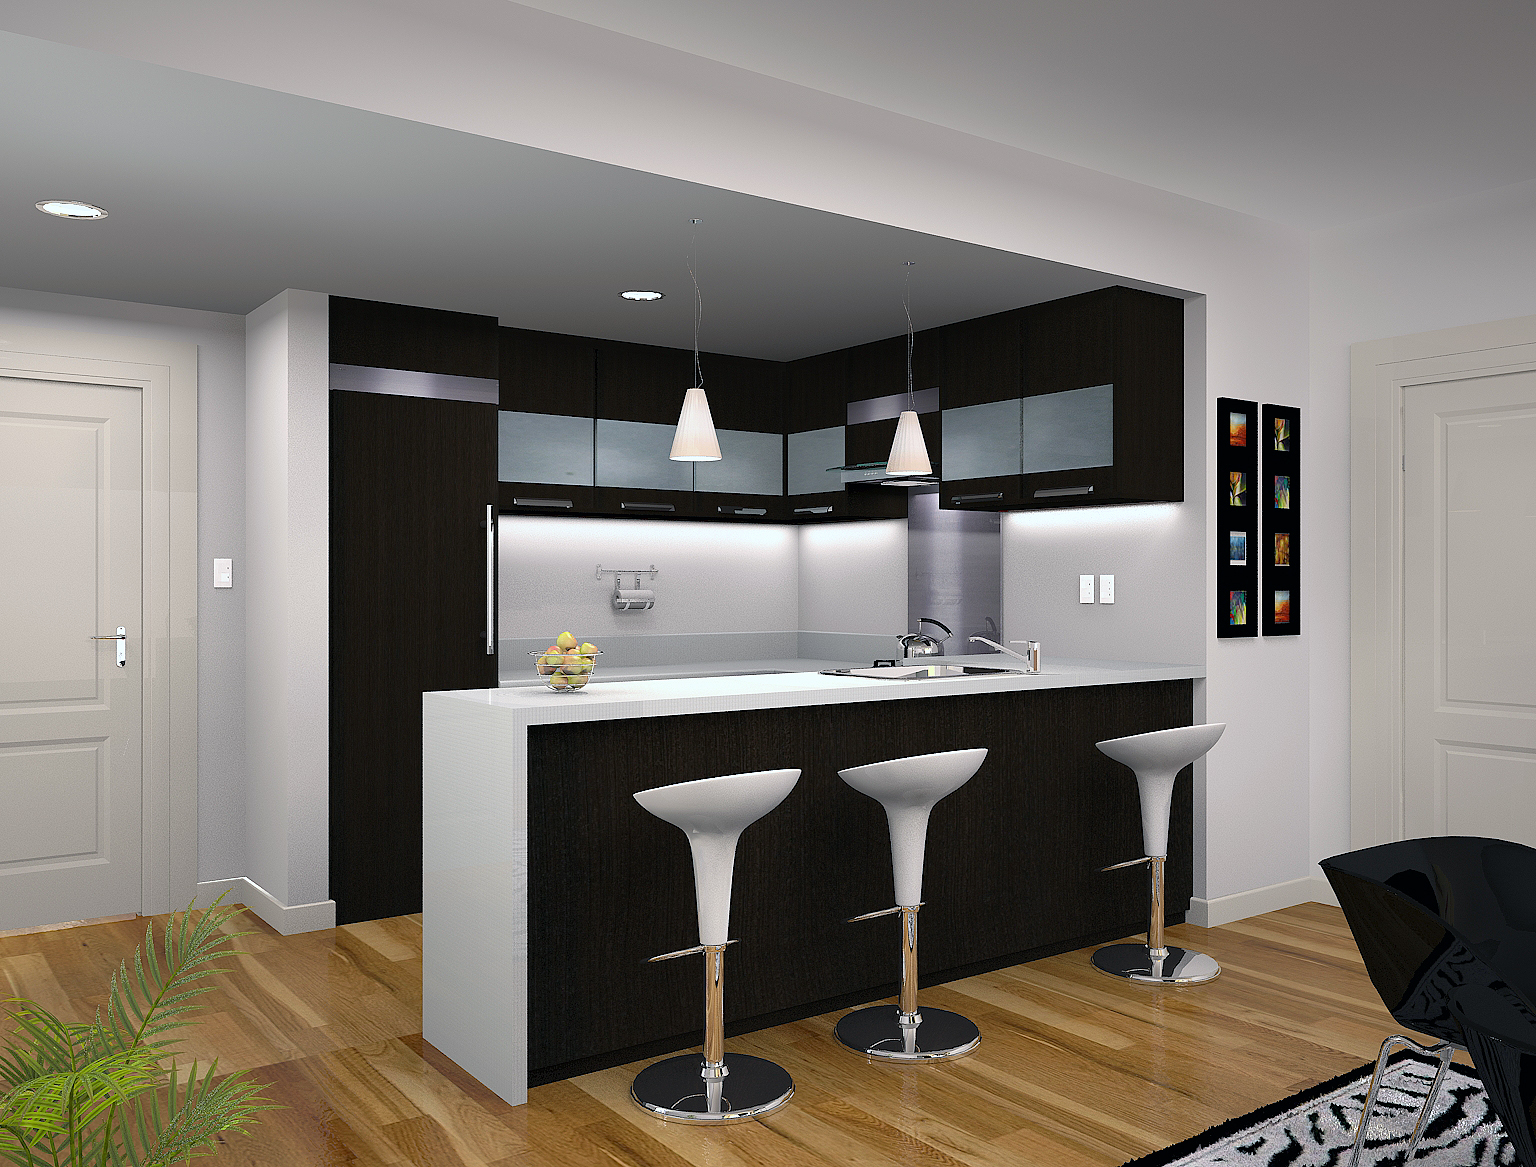 Angelo aguilar interior design portfolio kitchen condo Condo kitchen design philippines